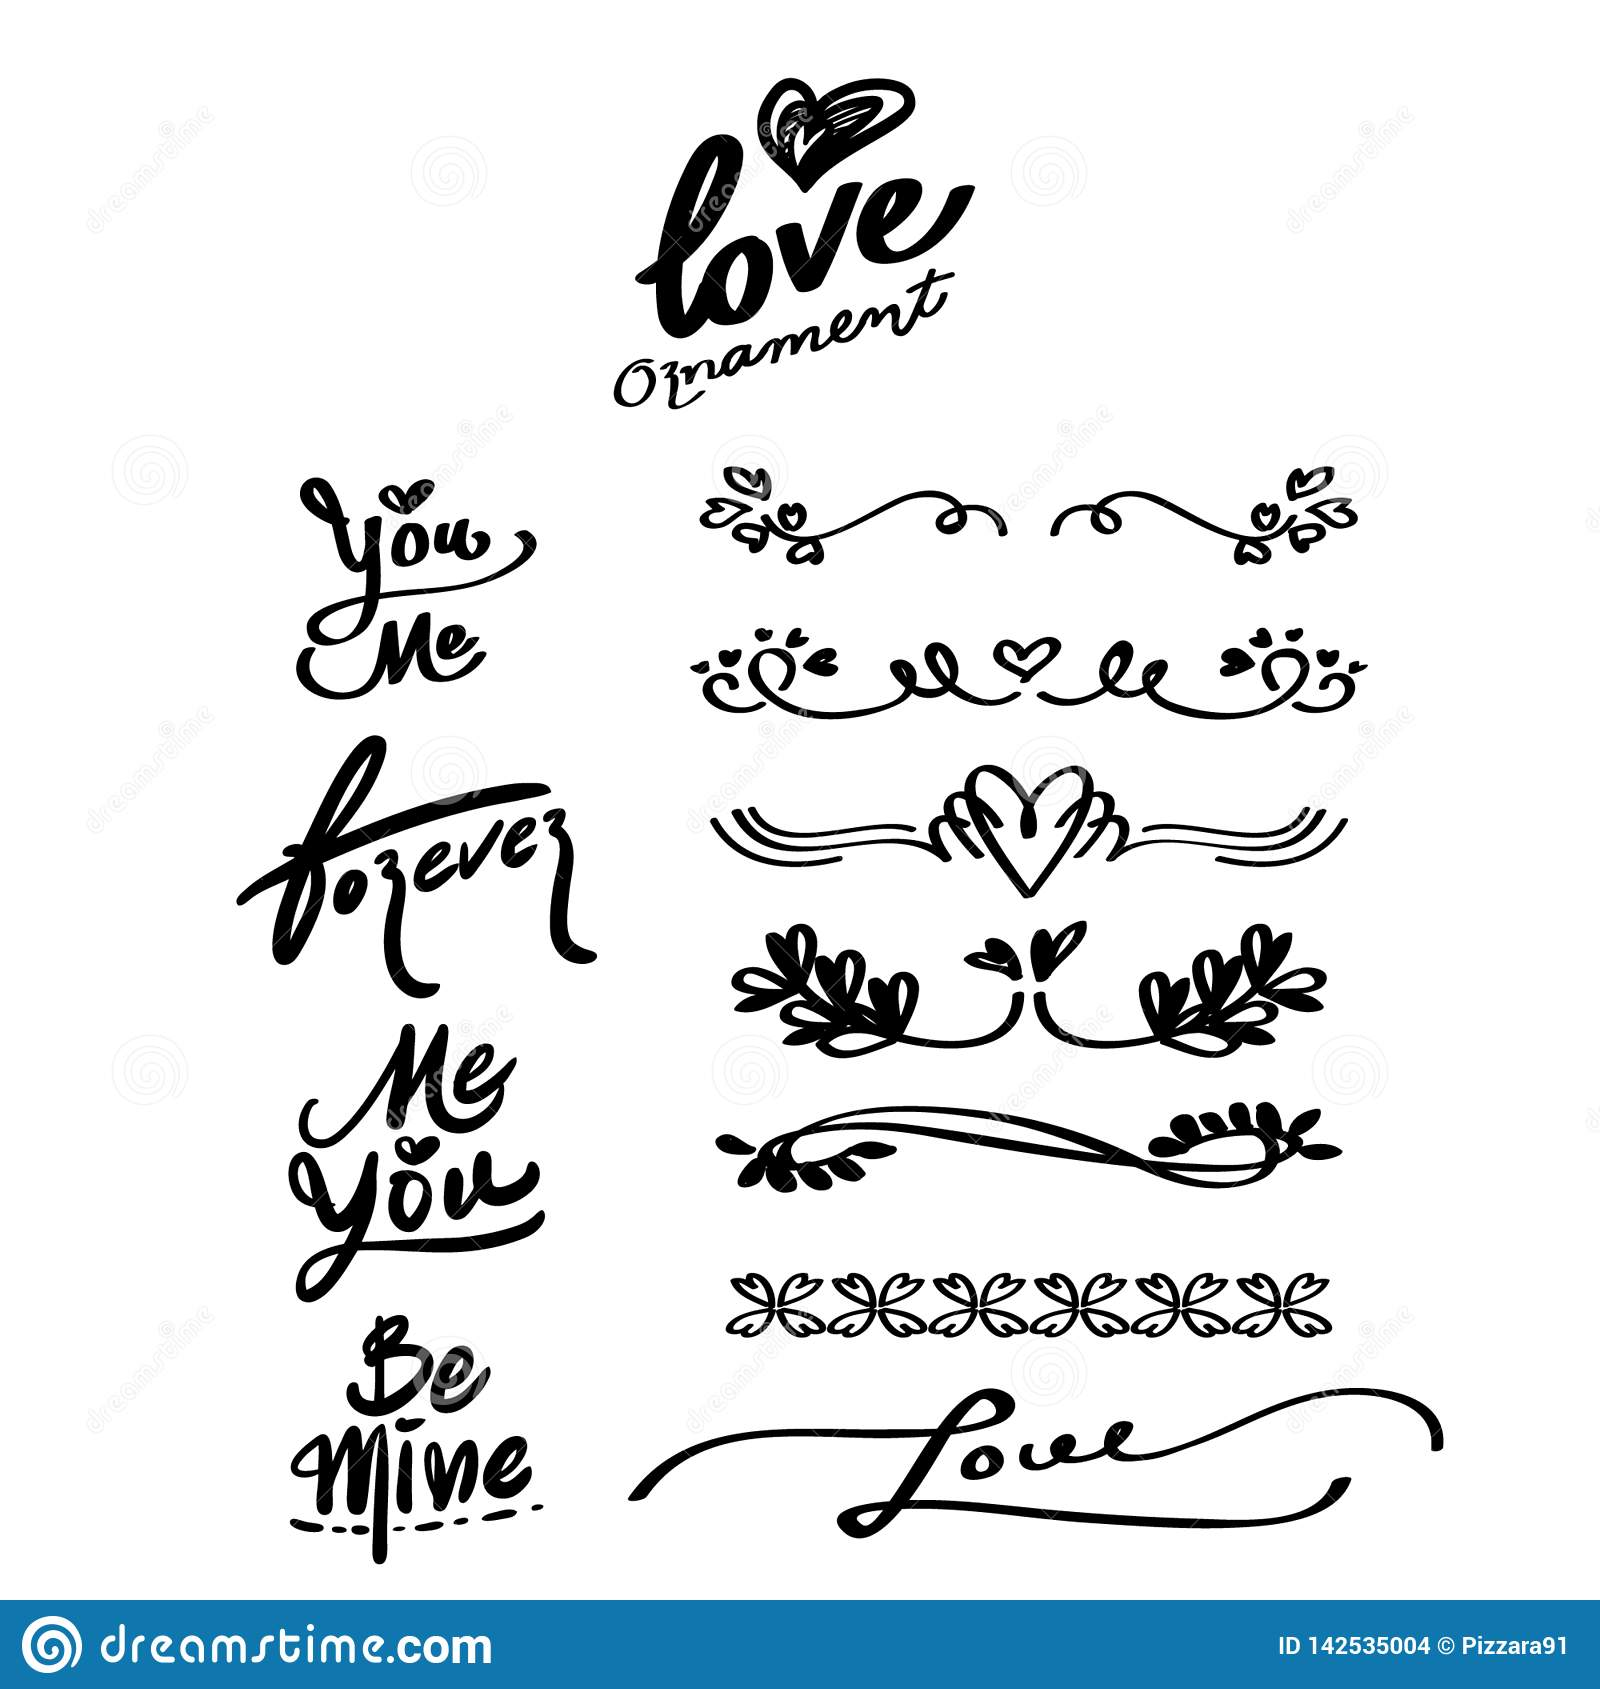 Love Hand drawn Ornaments and Calligraphy Words, divider.